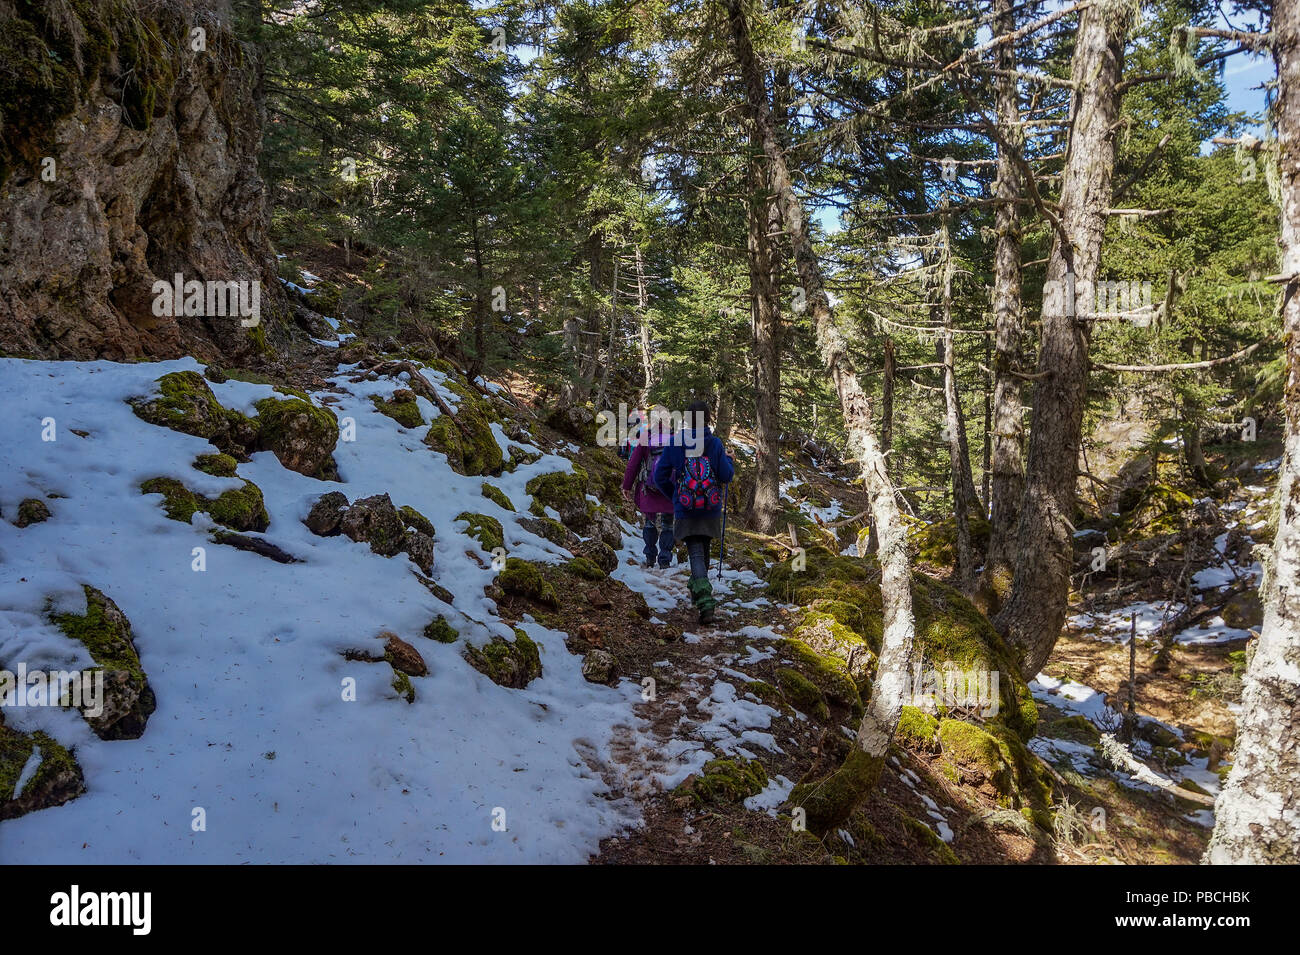 People Hiking from the ski resort of Aroania (also known as Helmos or Chelmos) Mountain heading to the Big Cave Monastery located above Zachlorou. - Stock Image